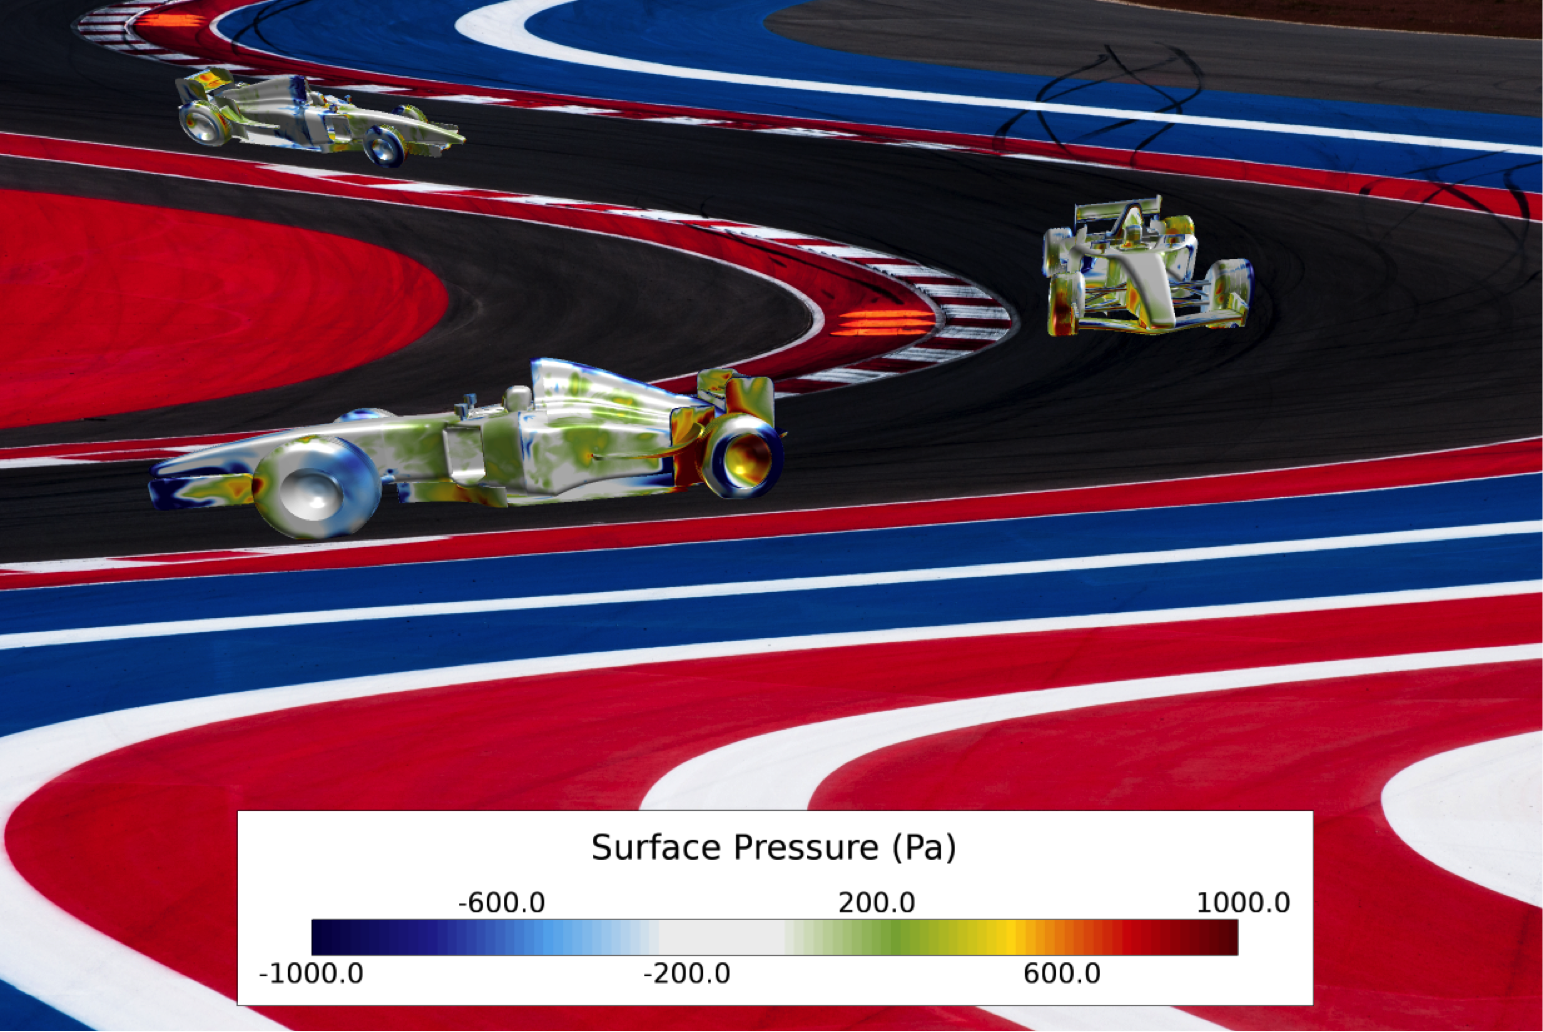 Figure 5: Rendering of the vehicle making the simulated turn; showing surface pressure on the exterior of the vehicle.